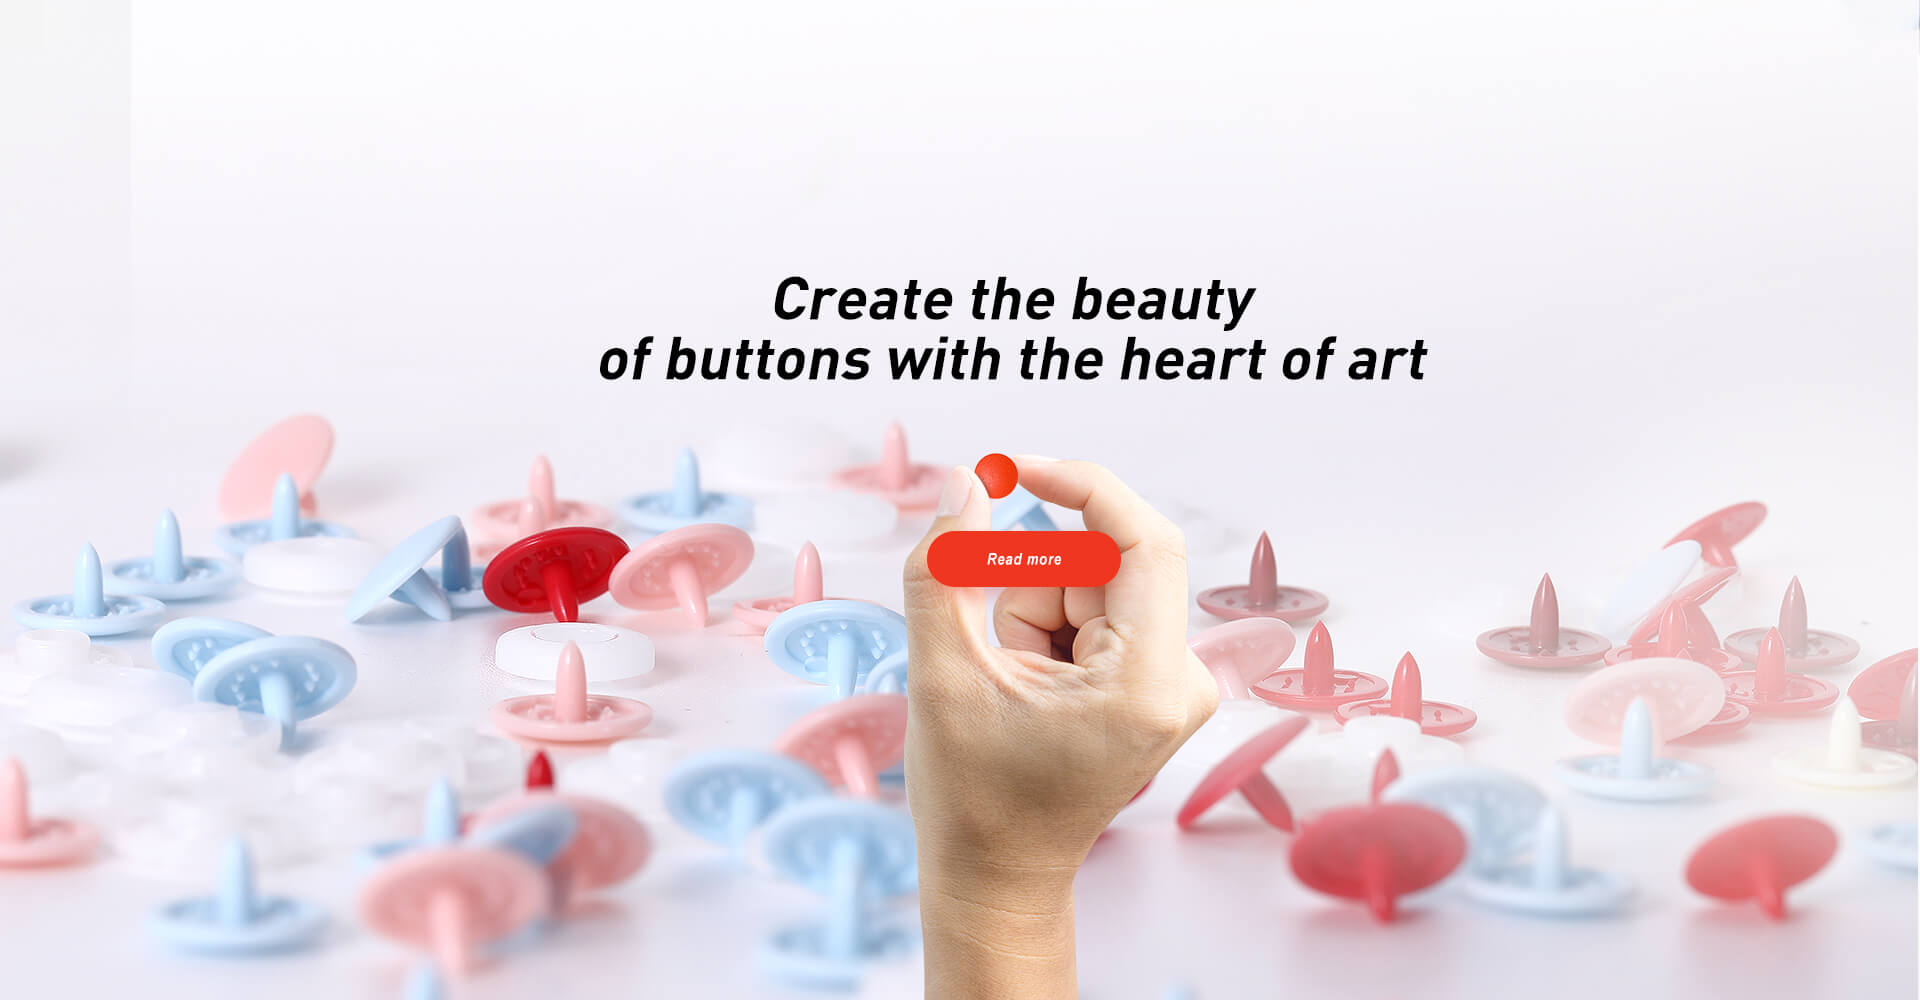 Create the beauty of buttons with the heart of art.